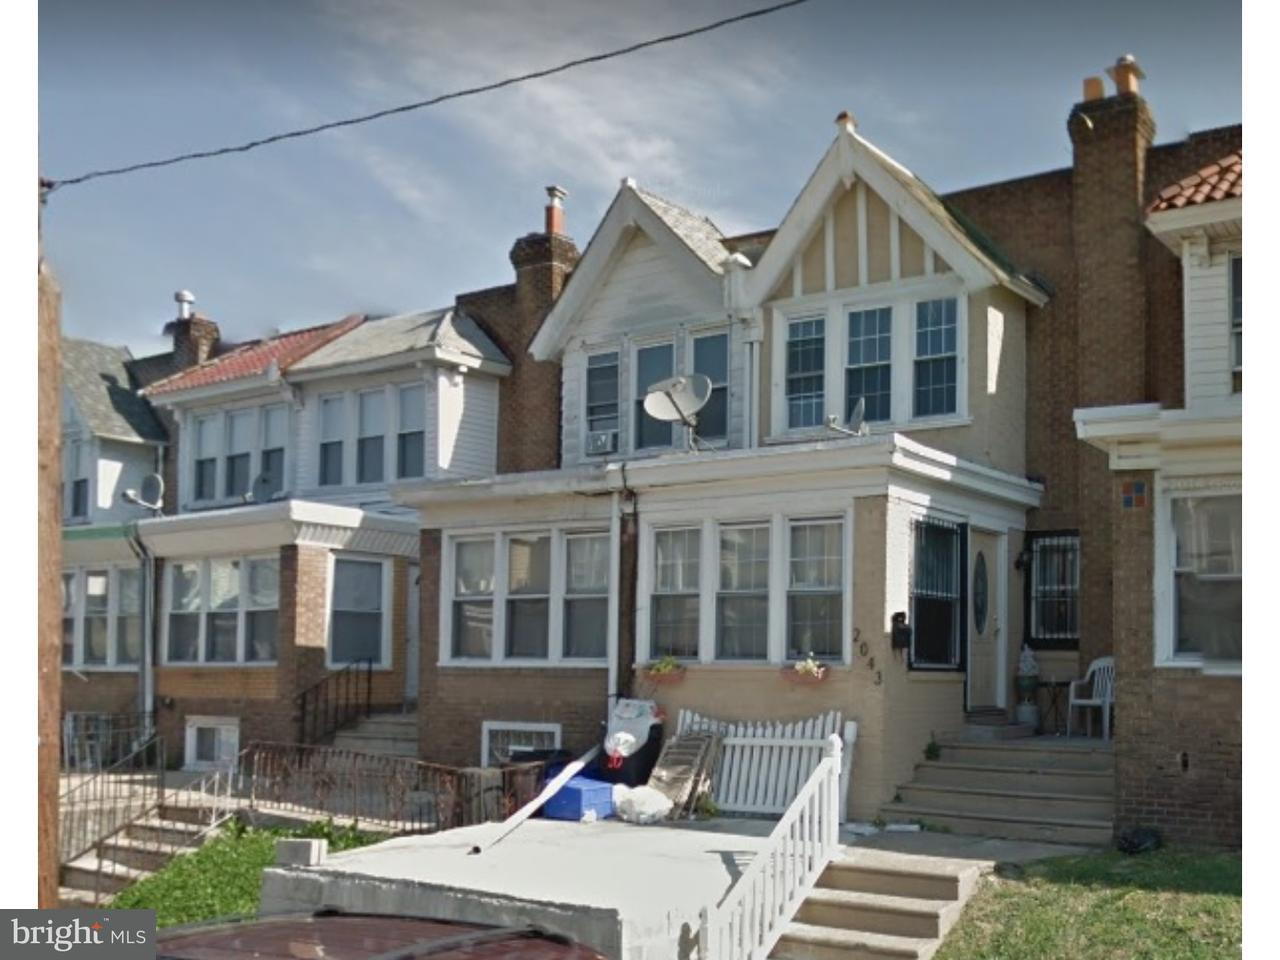 2043 S Redfield Philadelphia, PA 19143